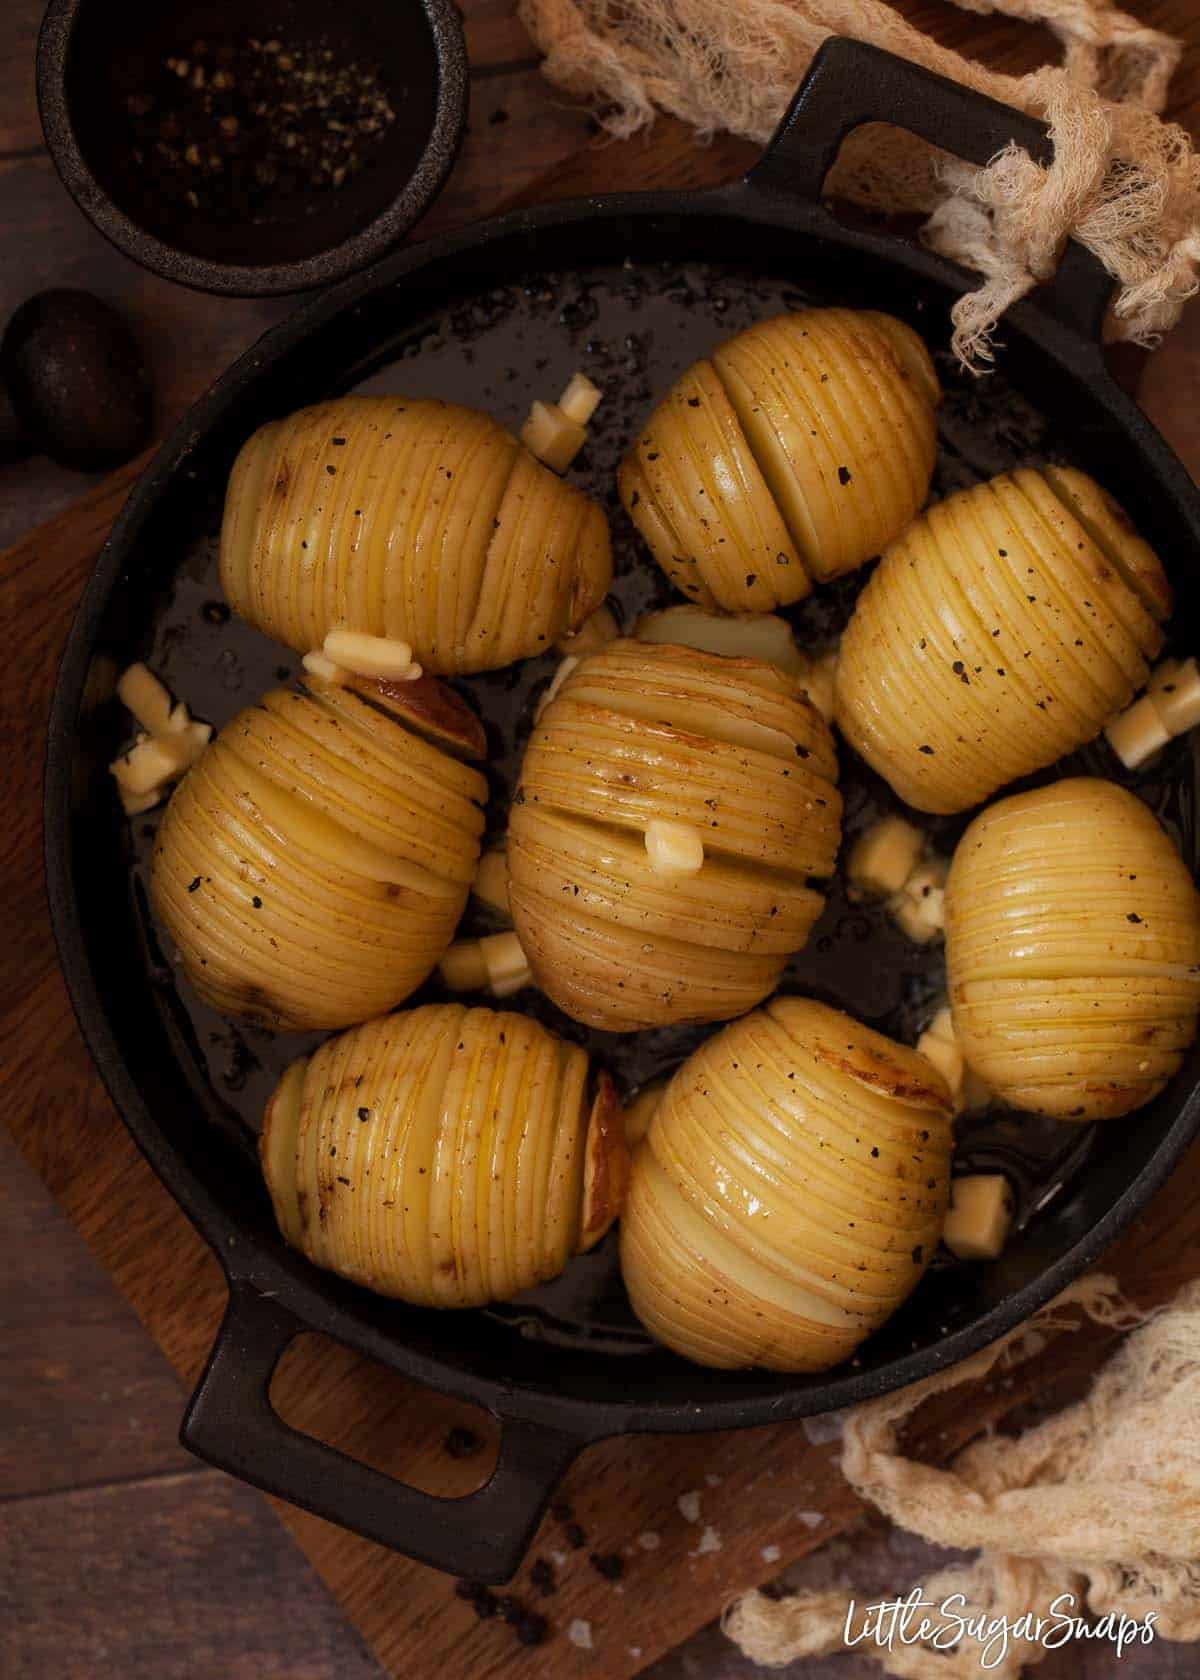 Process shot - adding butter to part-cooked Hasselback potatoes in a cooking pan